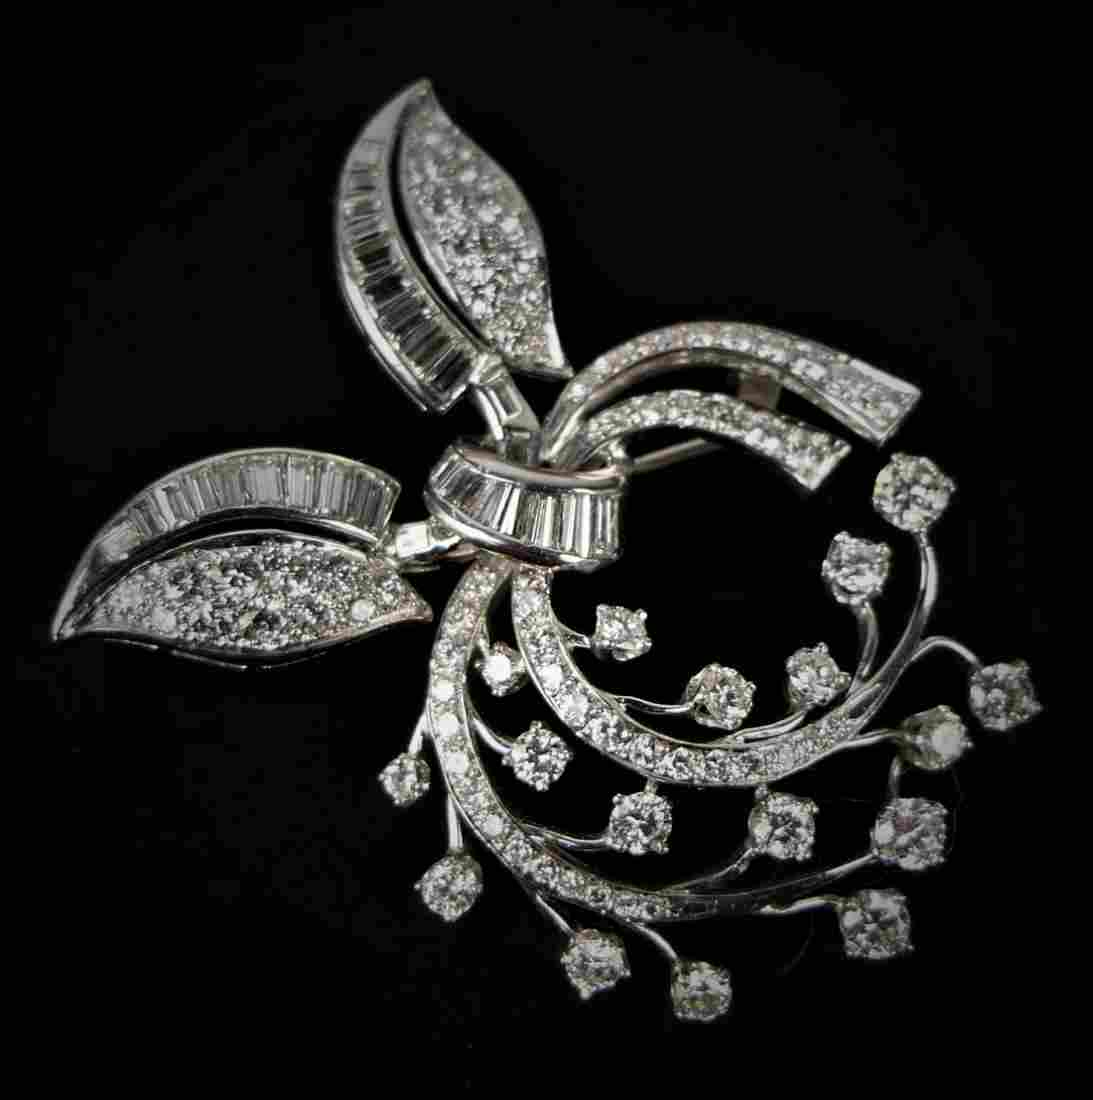 ORIGINAL DECO DIAMOND & PLATINUM LARGE BROOCH